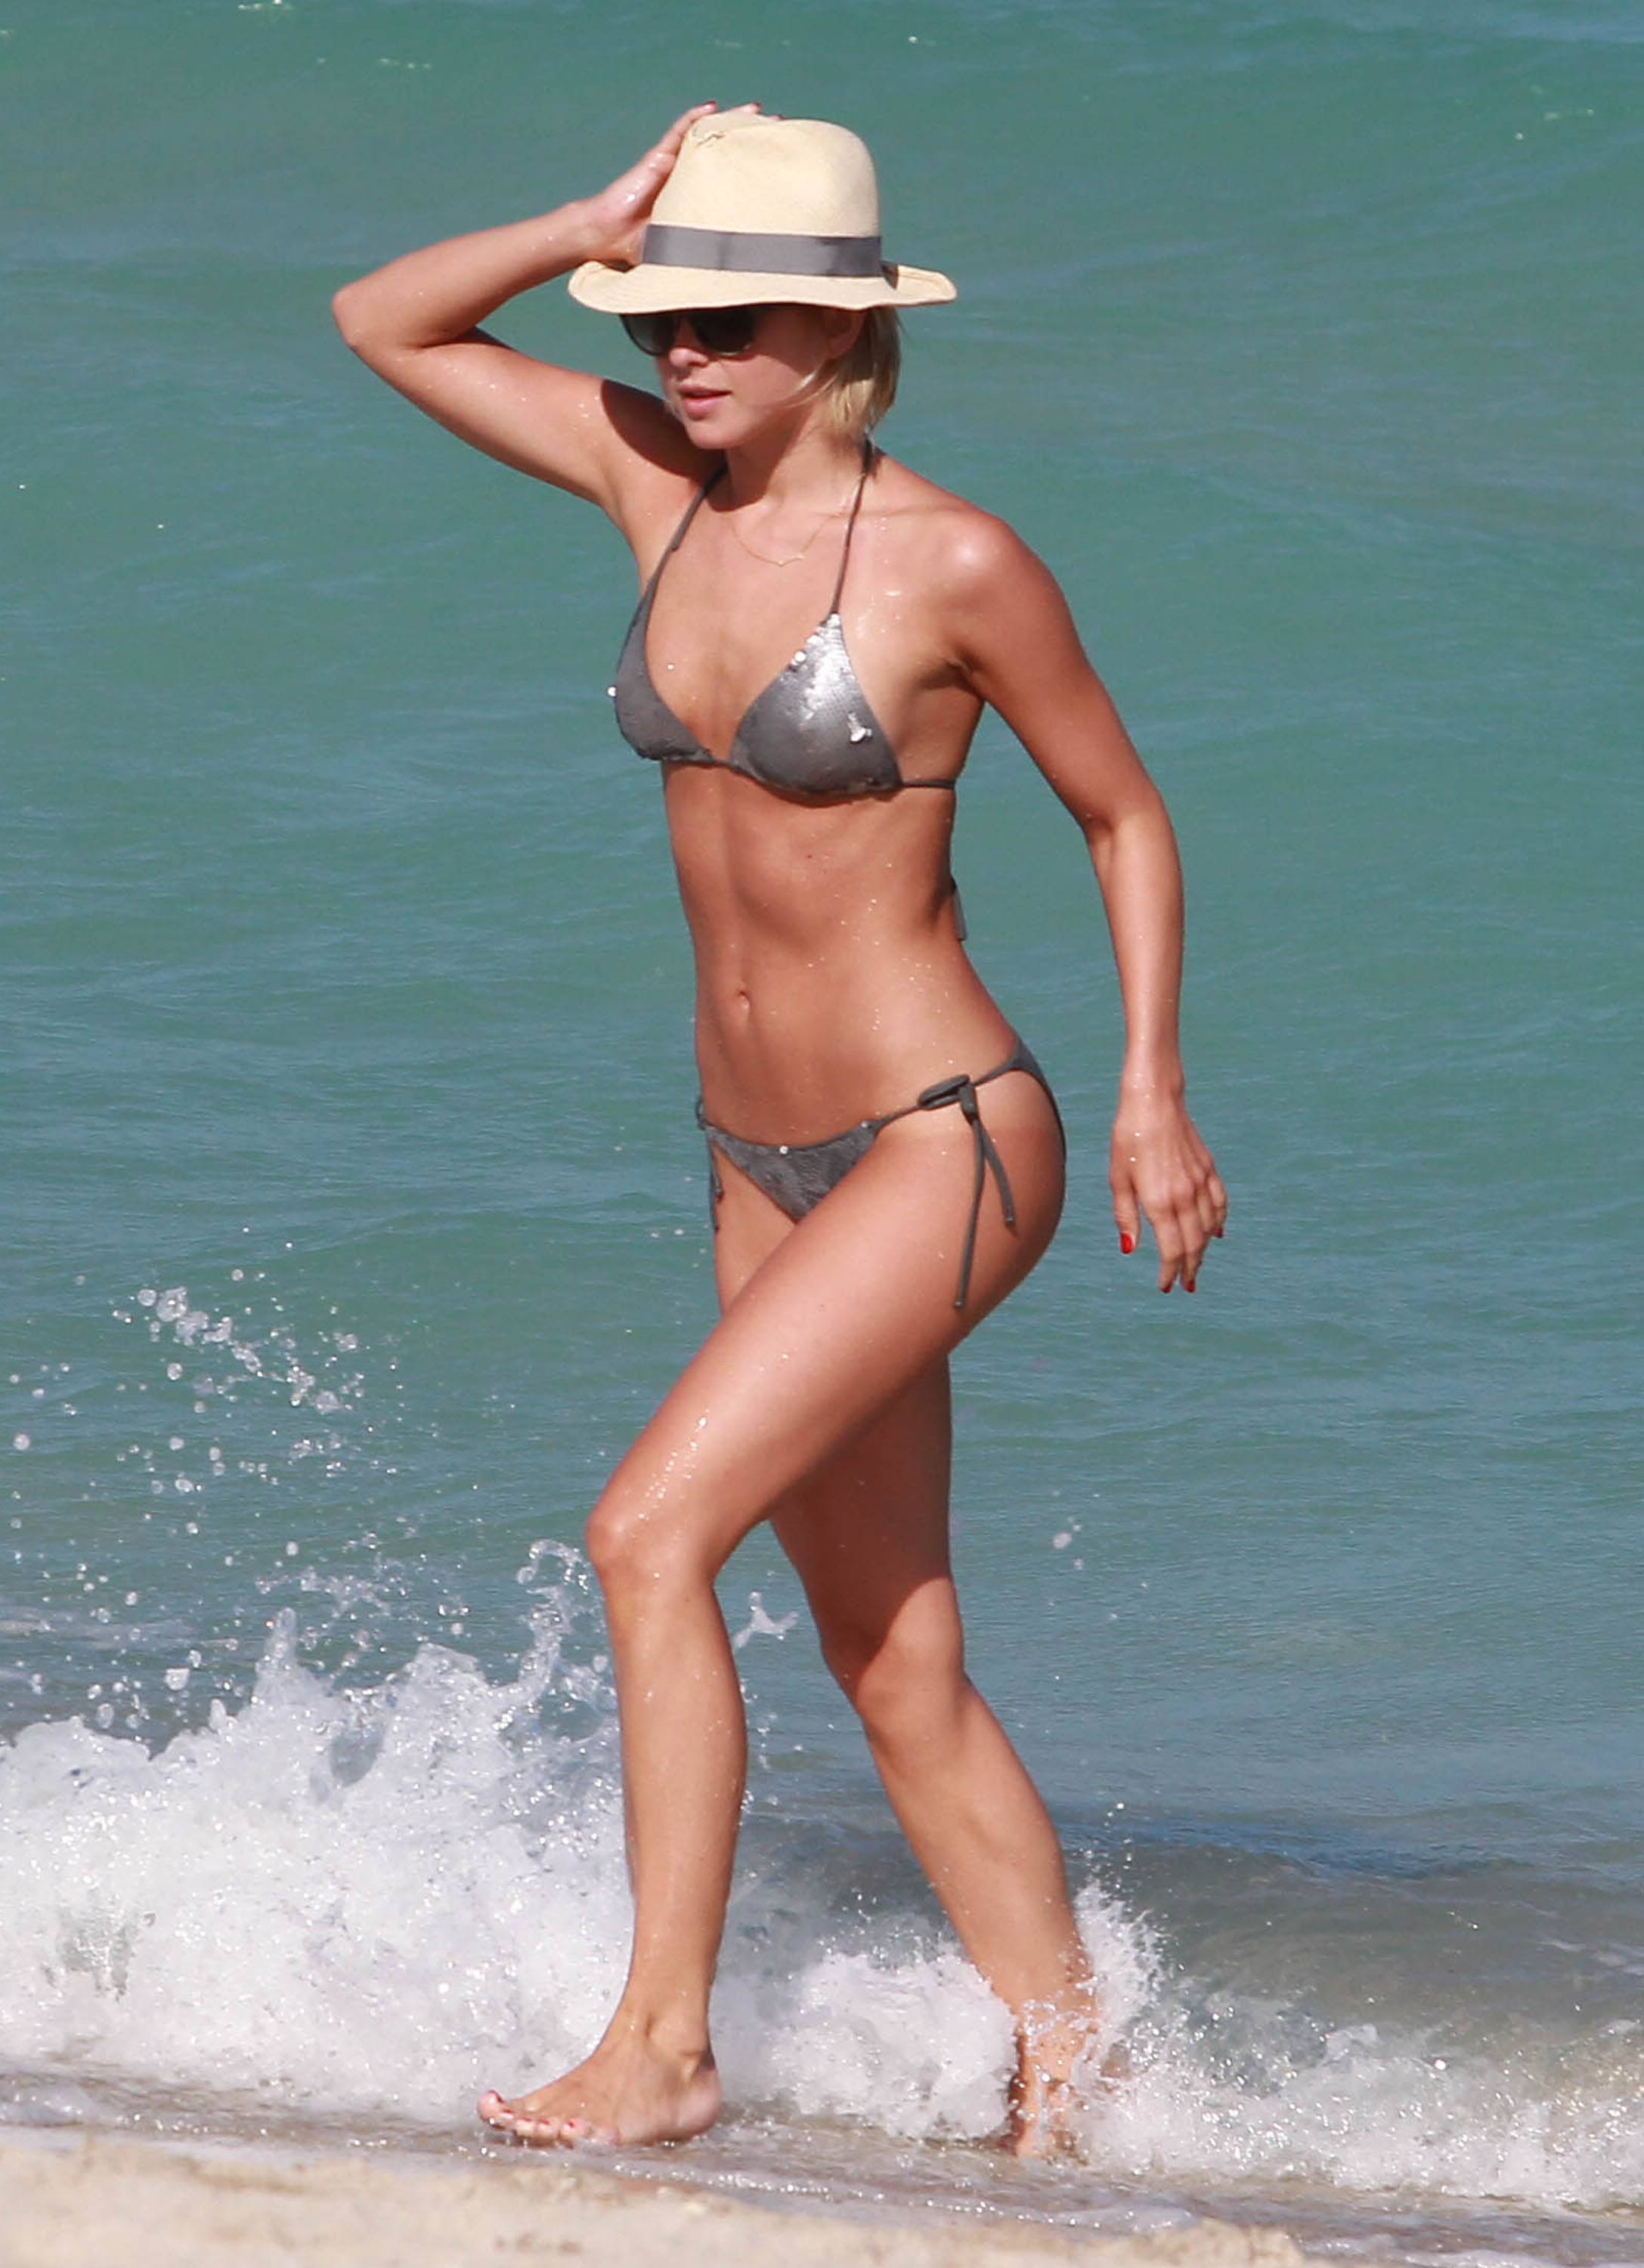 Julianne Hough glistened in a metallic bikini while stepping out of the water in Miami.